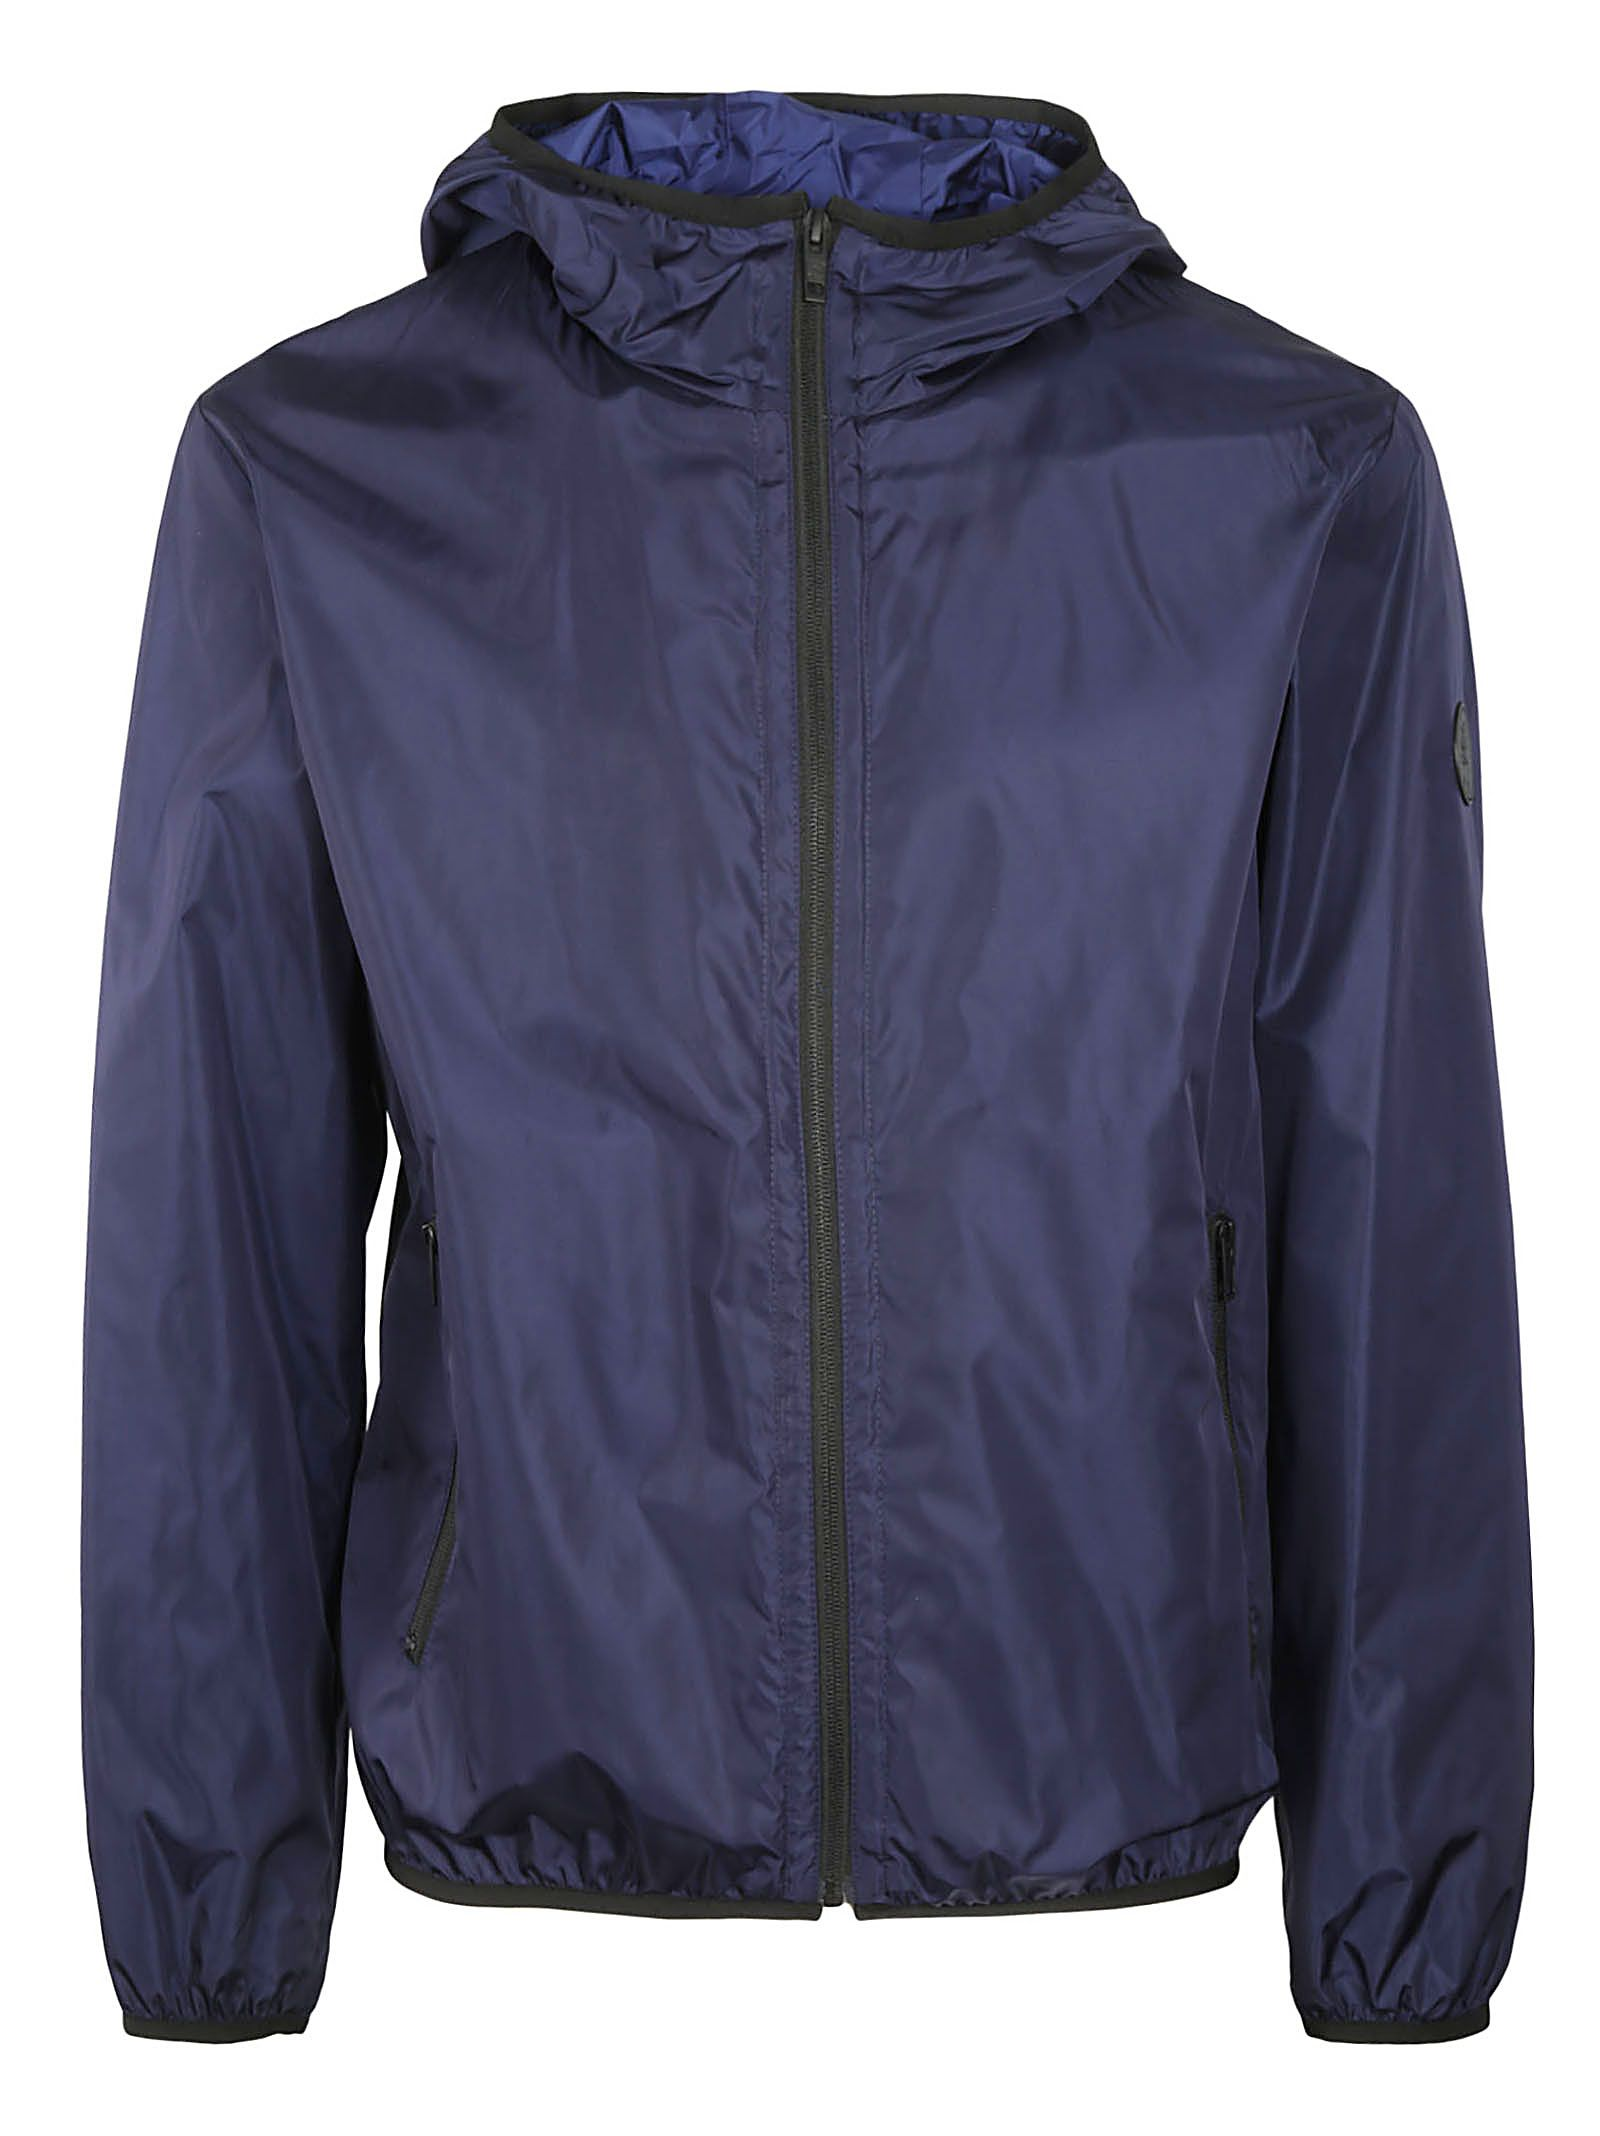 Fay Jackets FAY MEN'S NAM12420220PFWU605 BLUE OTHER MATERIALS OUTERWEAR JACKET